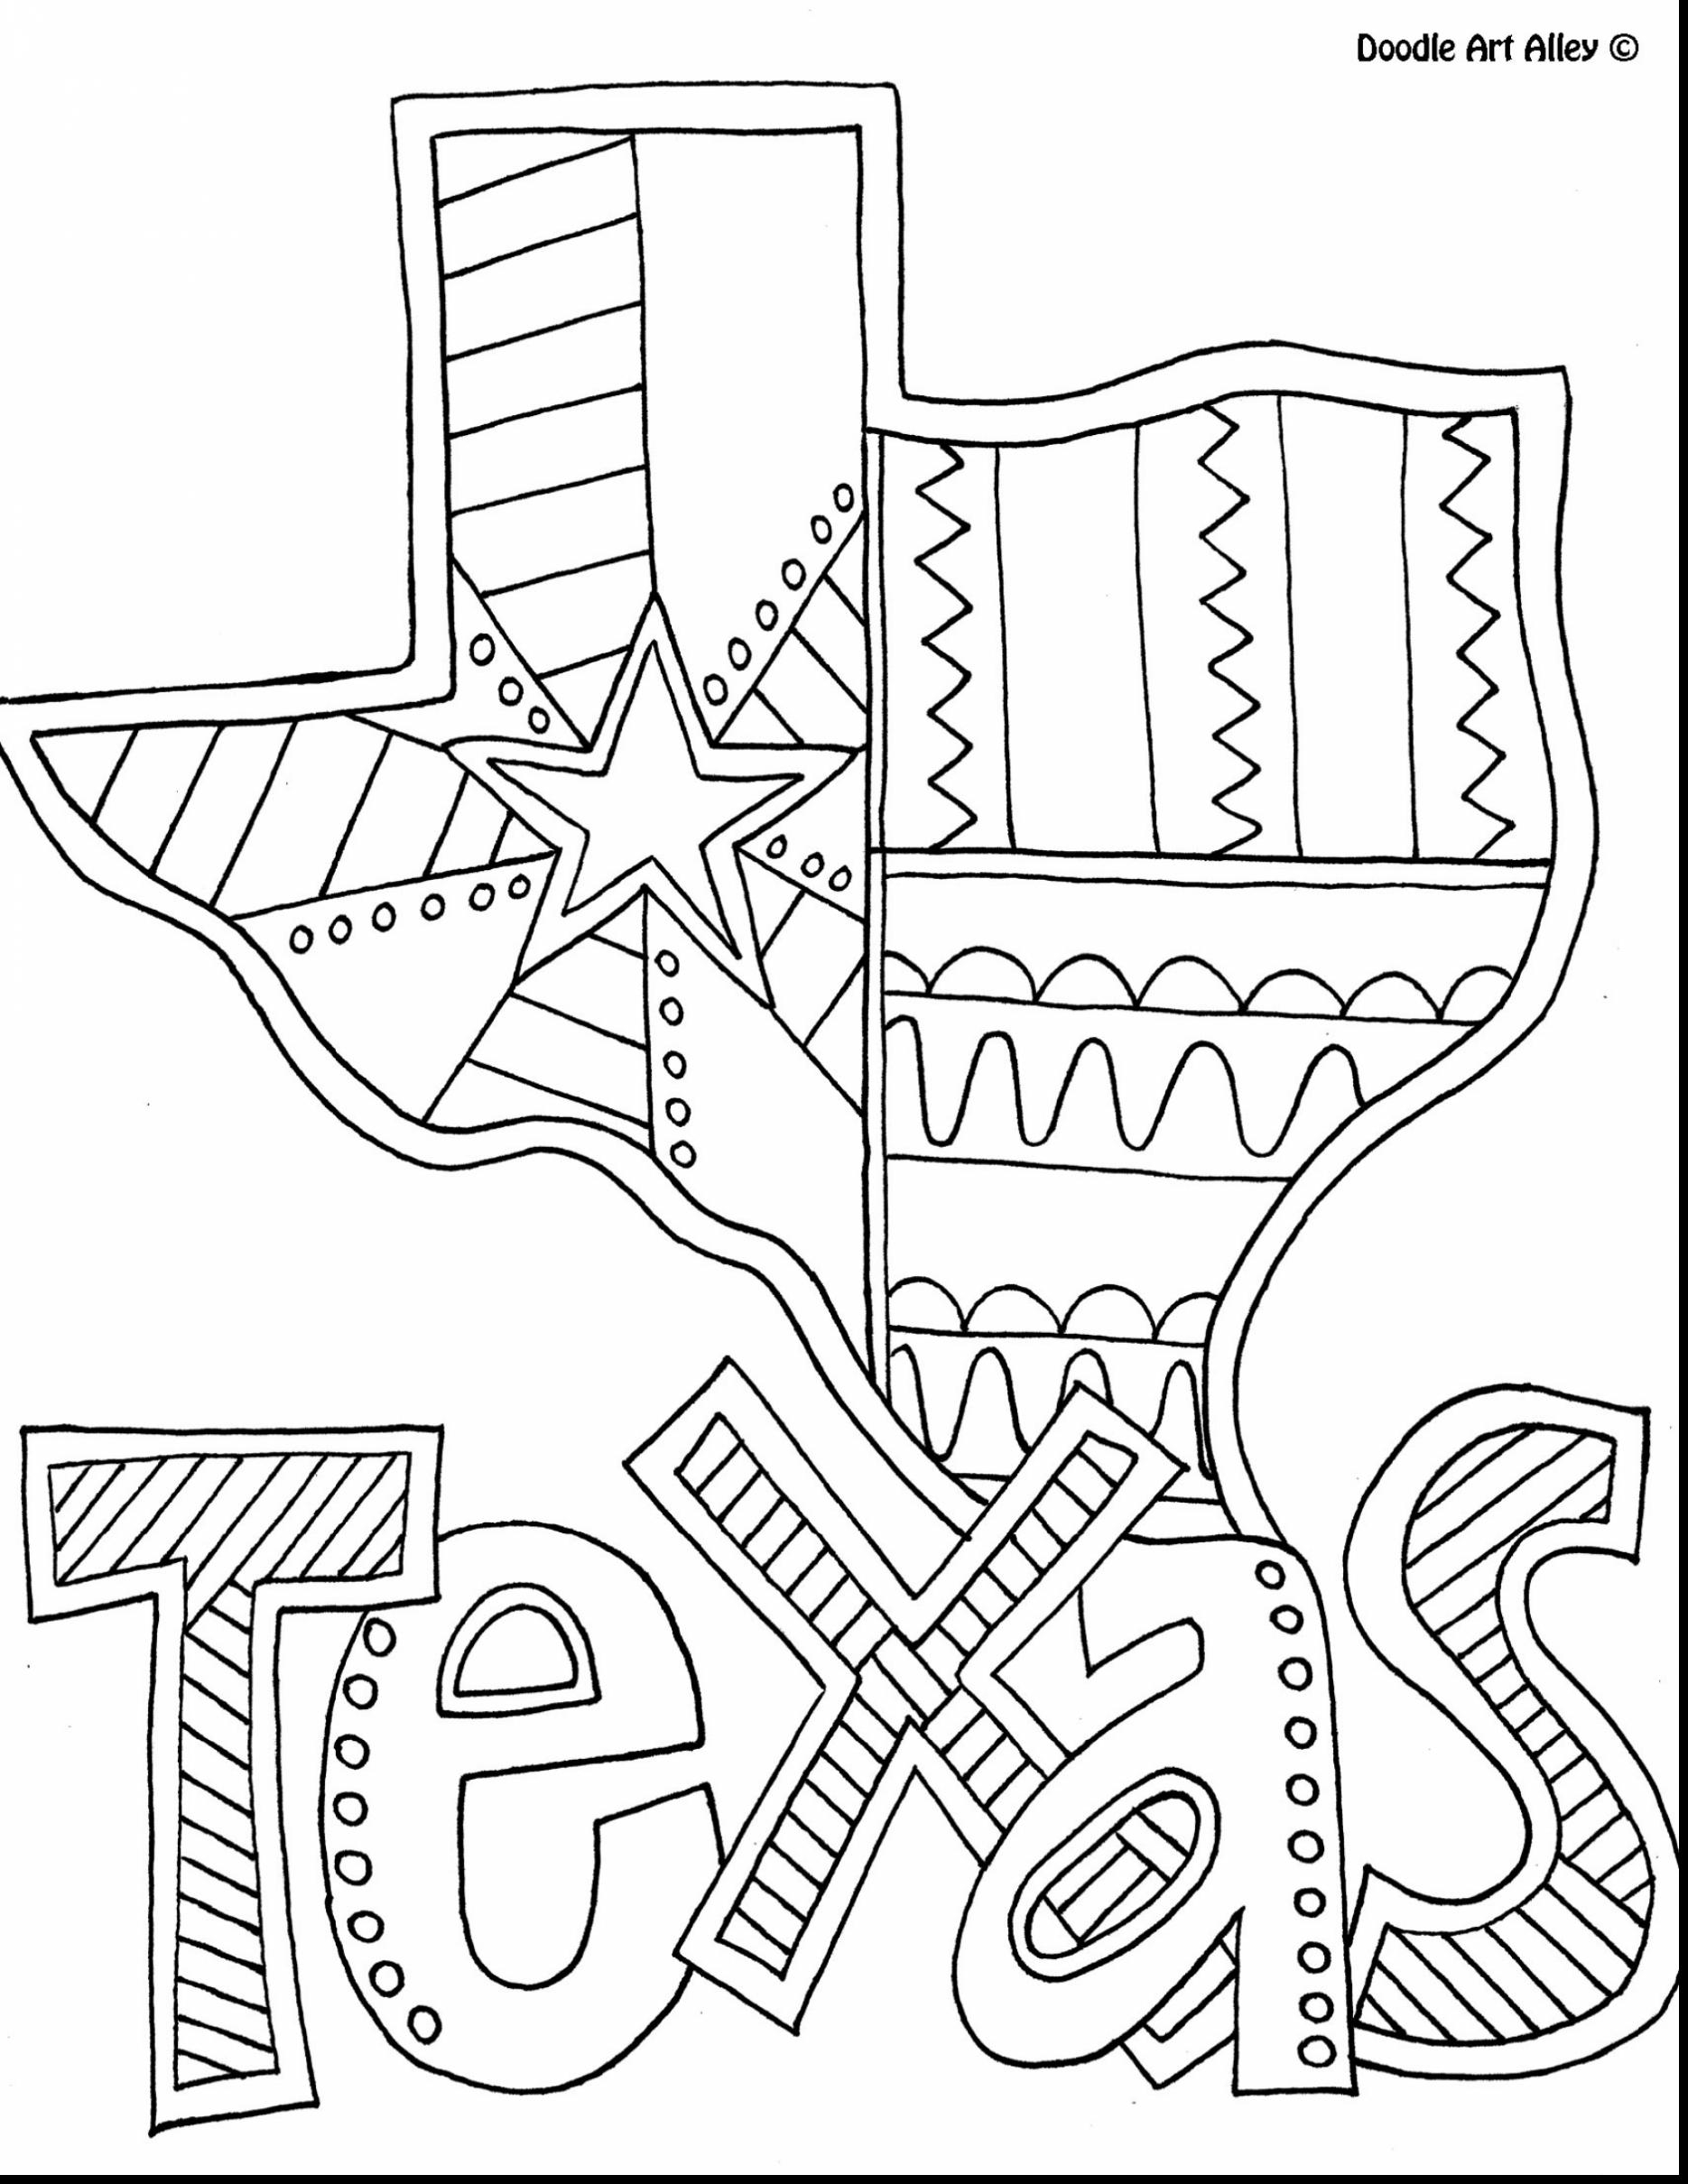 Astonishing Texas State Coloring Pages Printable with Doodle Art and Printable Of Perspective Texas Tech Coloring Pages Page to Print